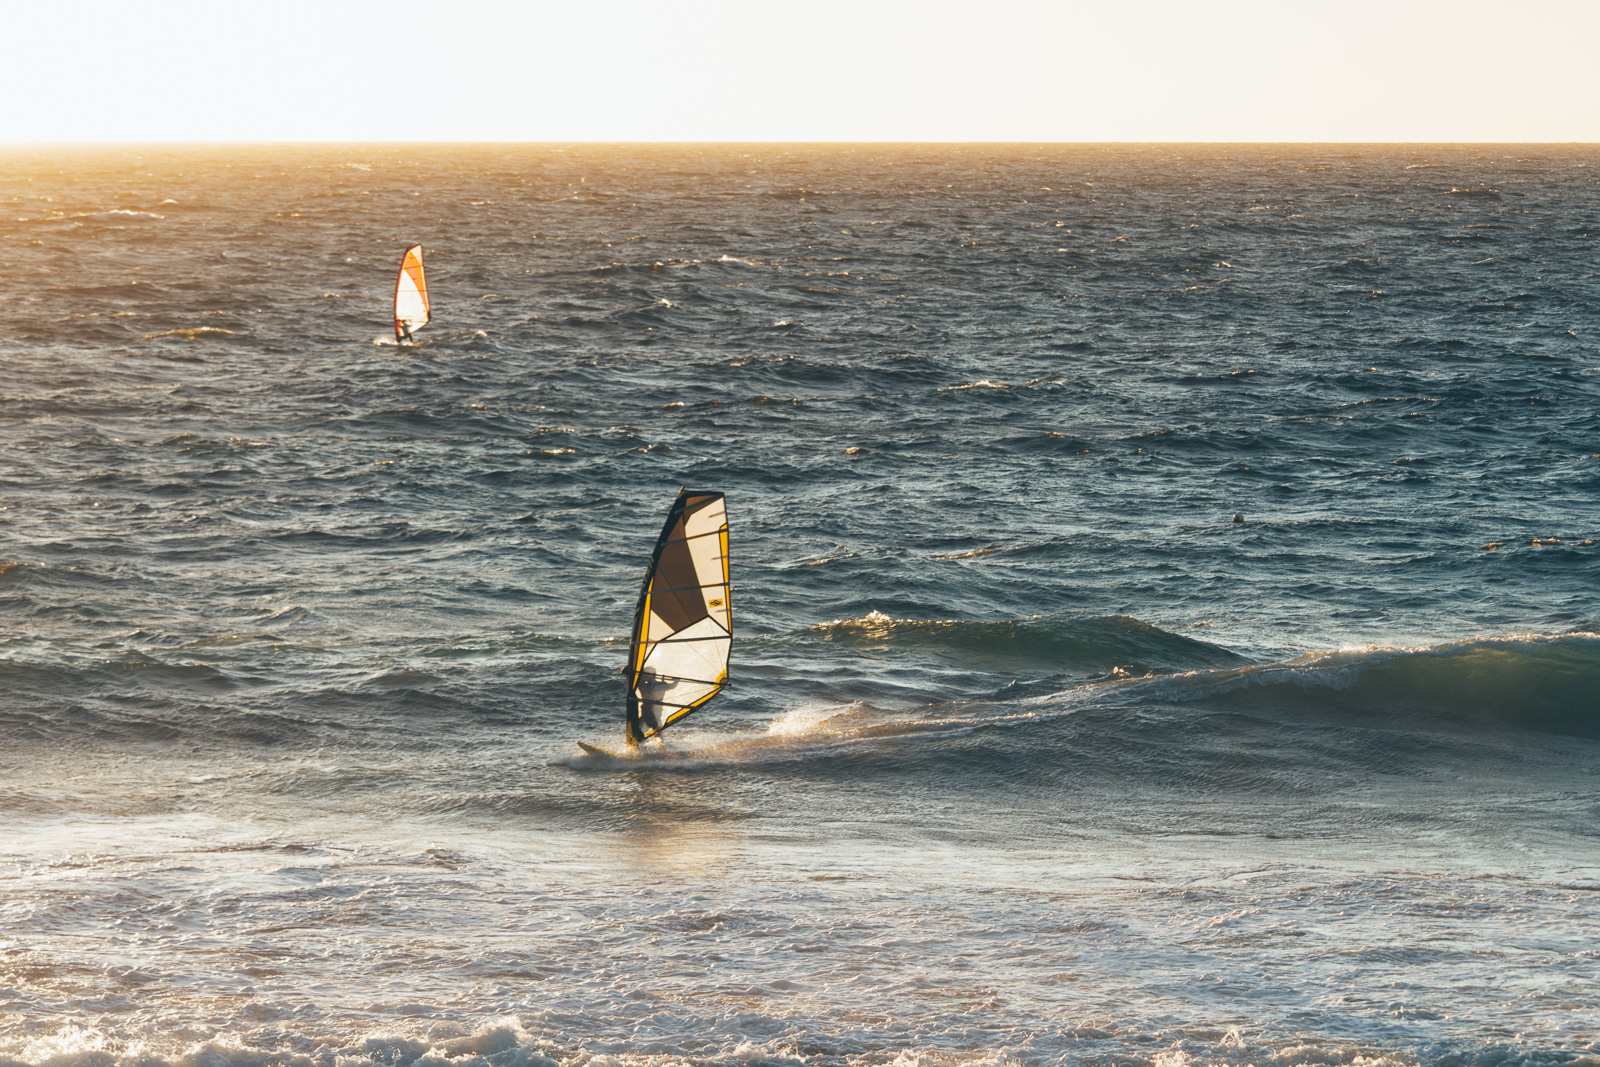 Wind Surfing in golden hour